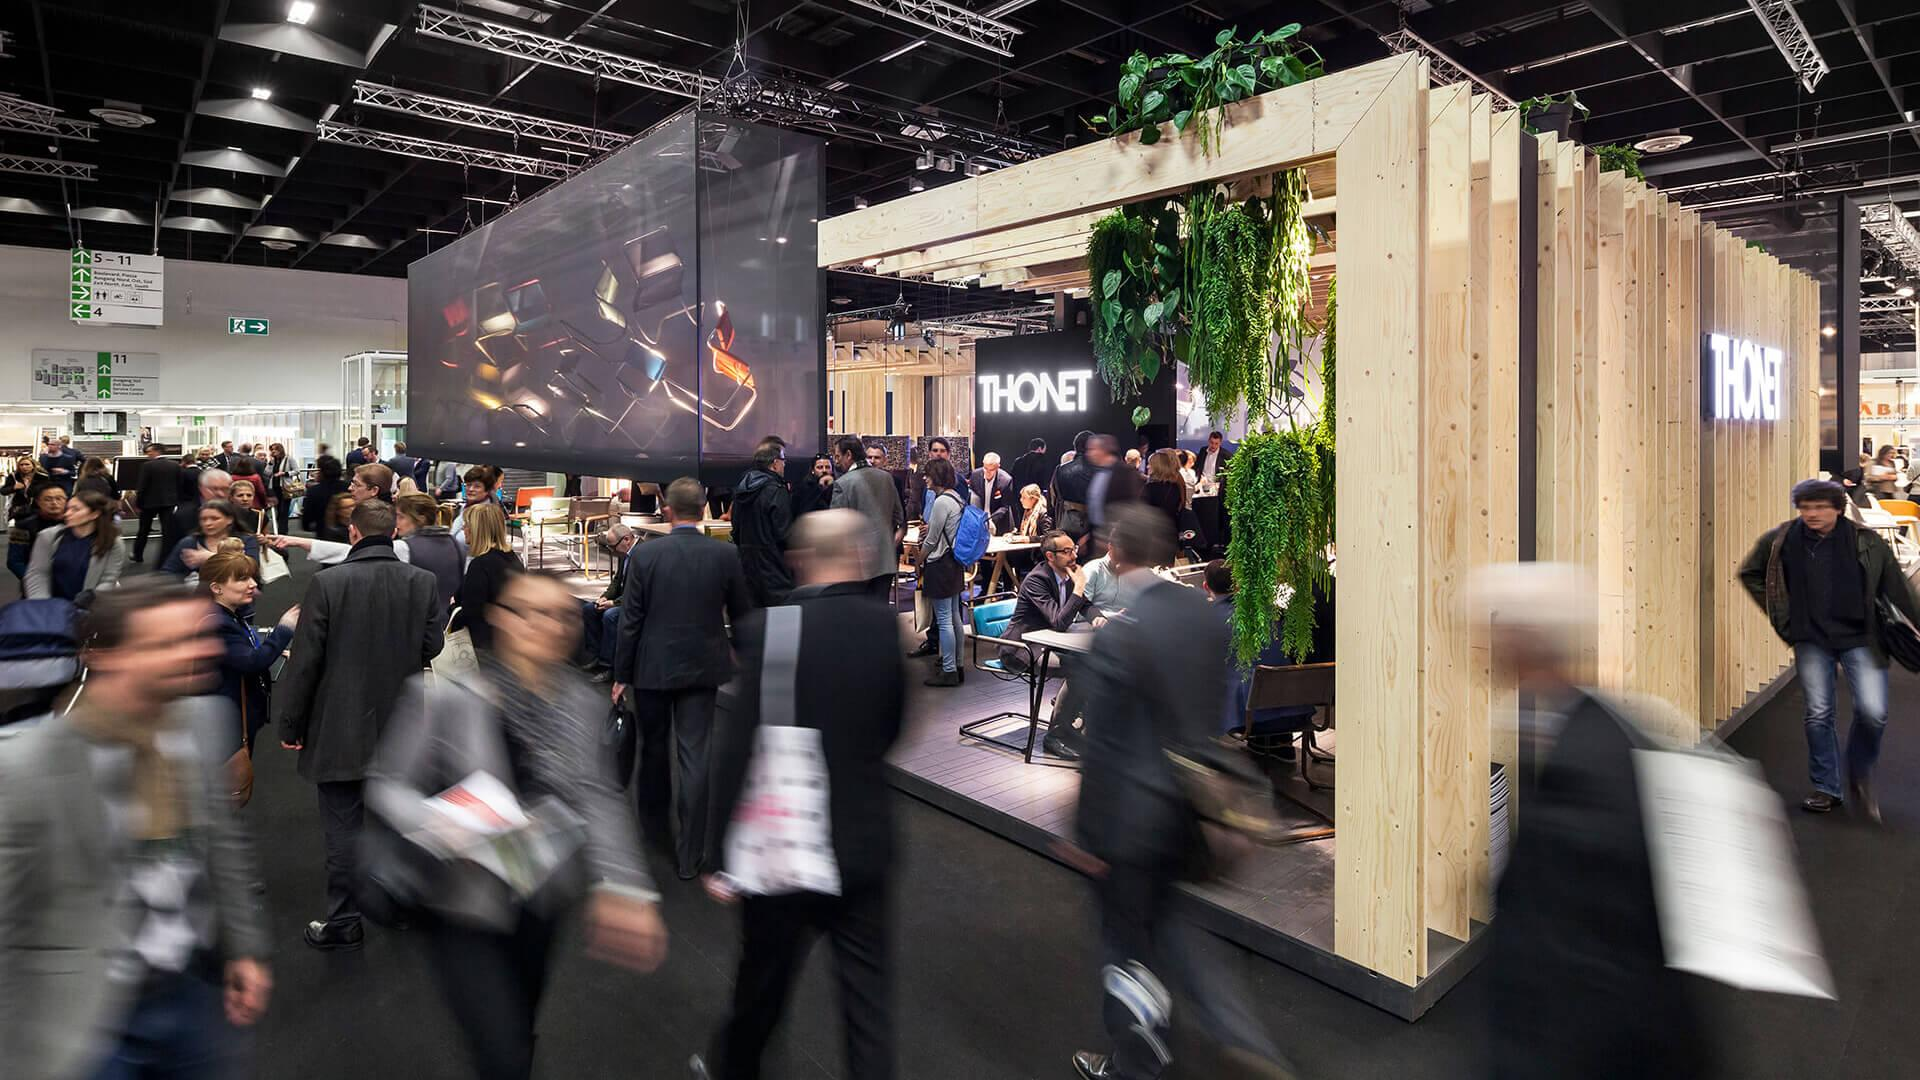 Get To Know All The Main Events Taking Place At Imm Cologne 2019 286847